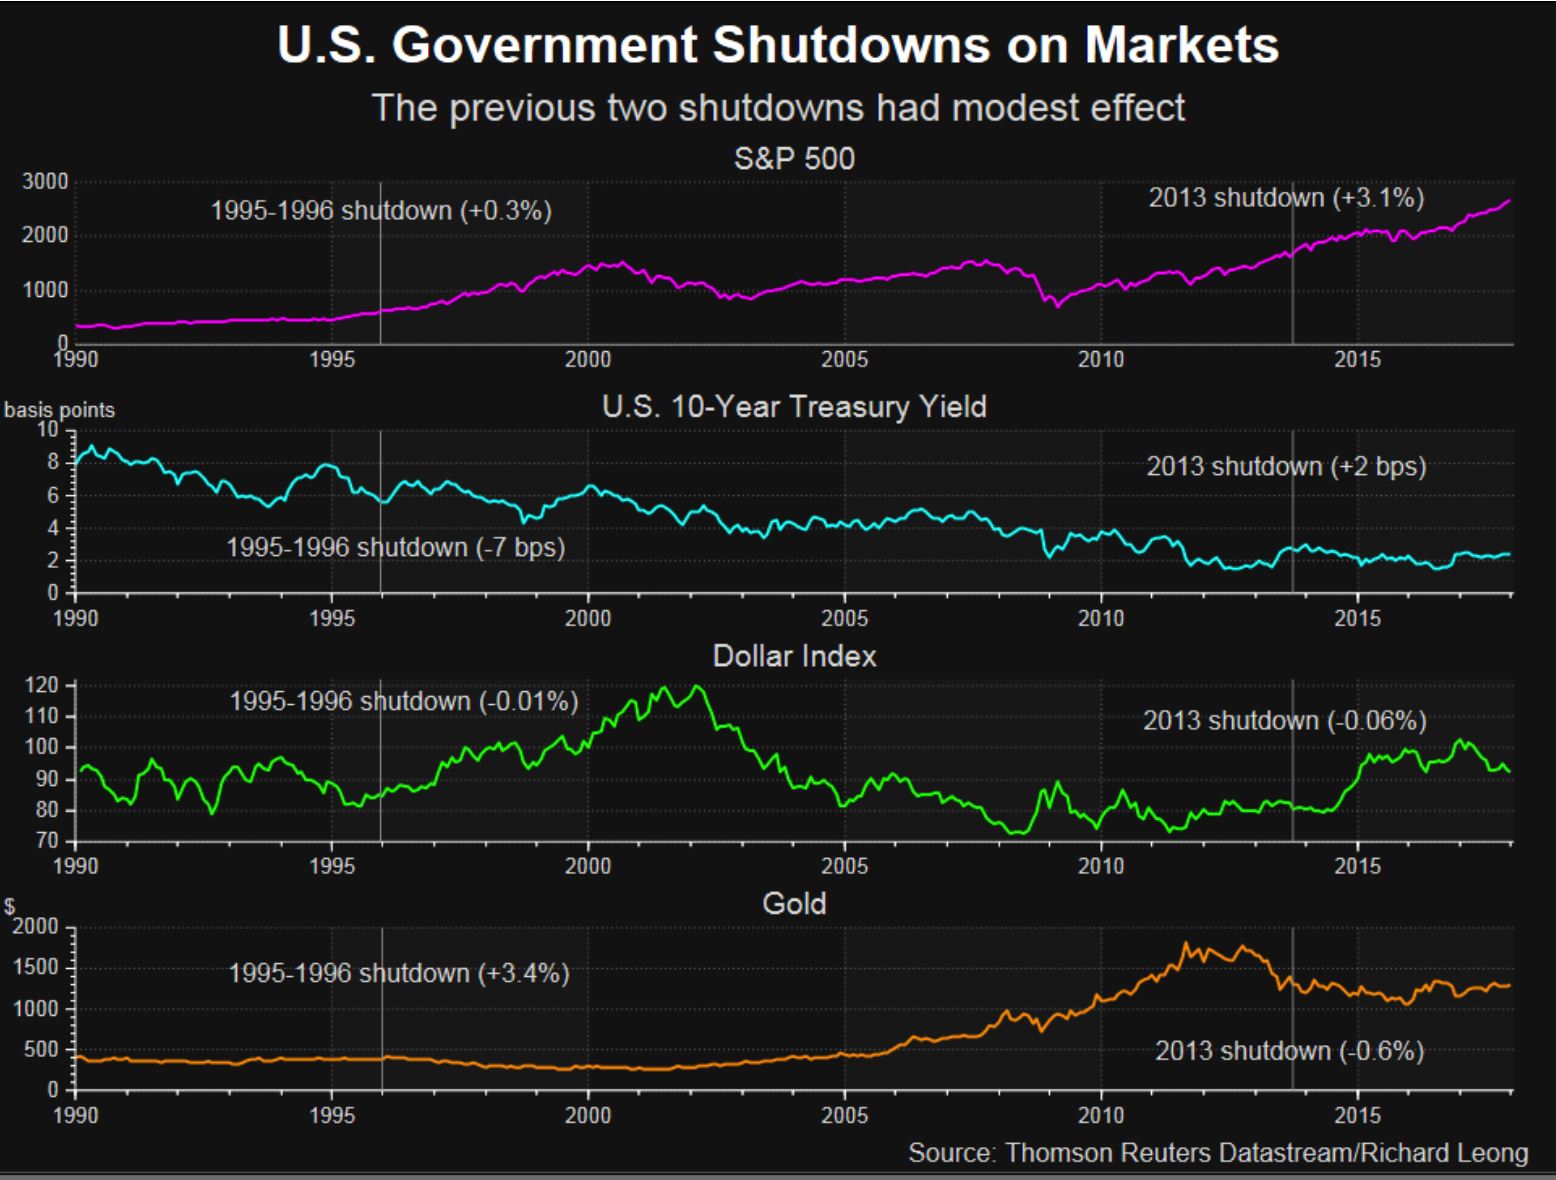 US Government Shutdows and Markets, 1990 - 2018